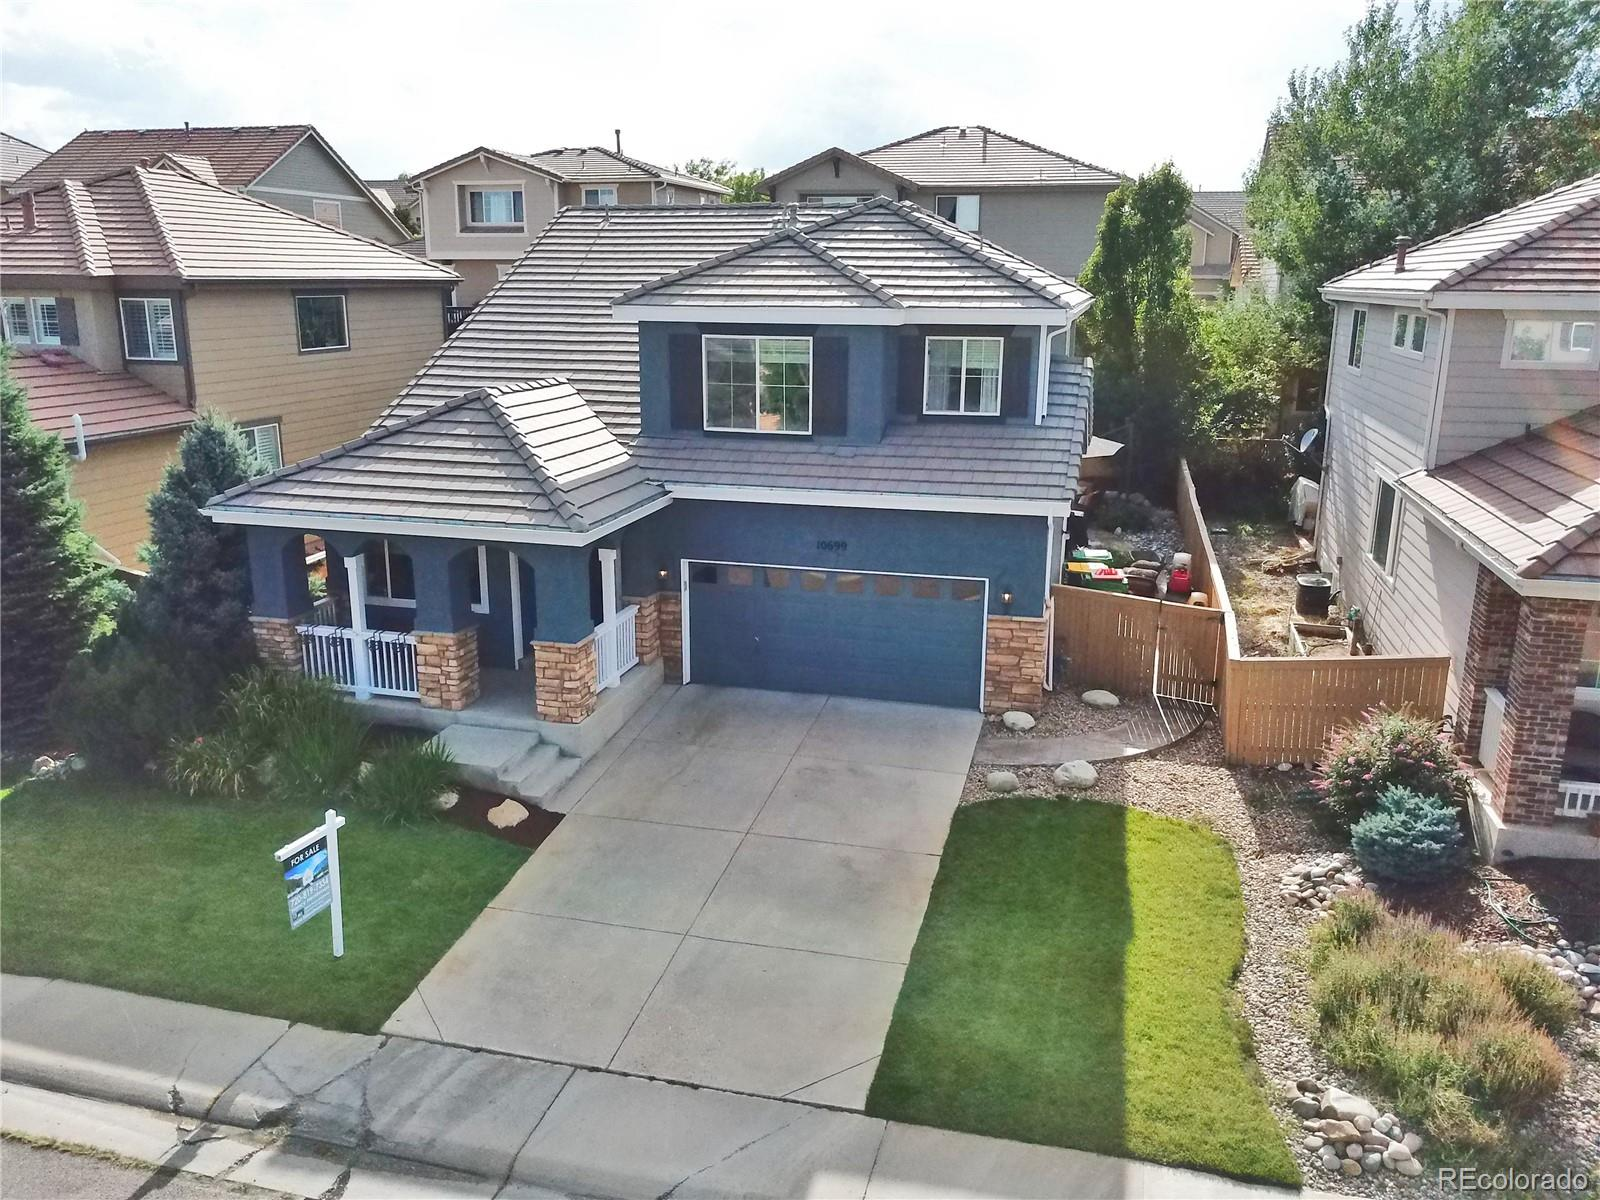 MLS# 2831572 - 3 - 10699 Wynspire Way, Highlands Ranch, CO 80130